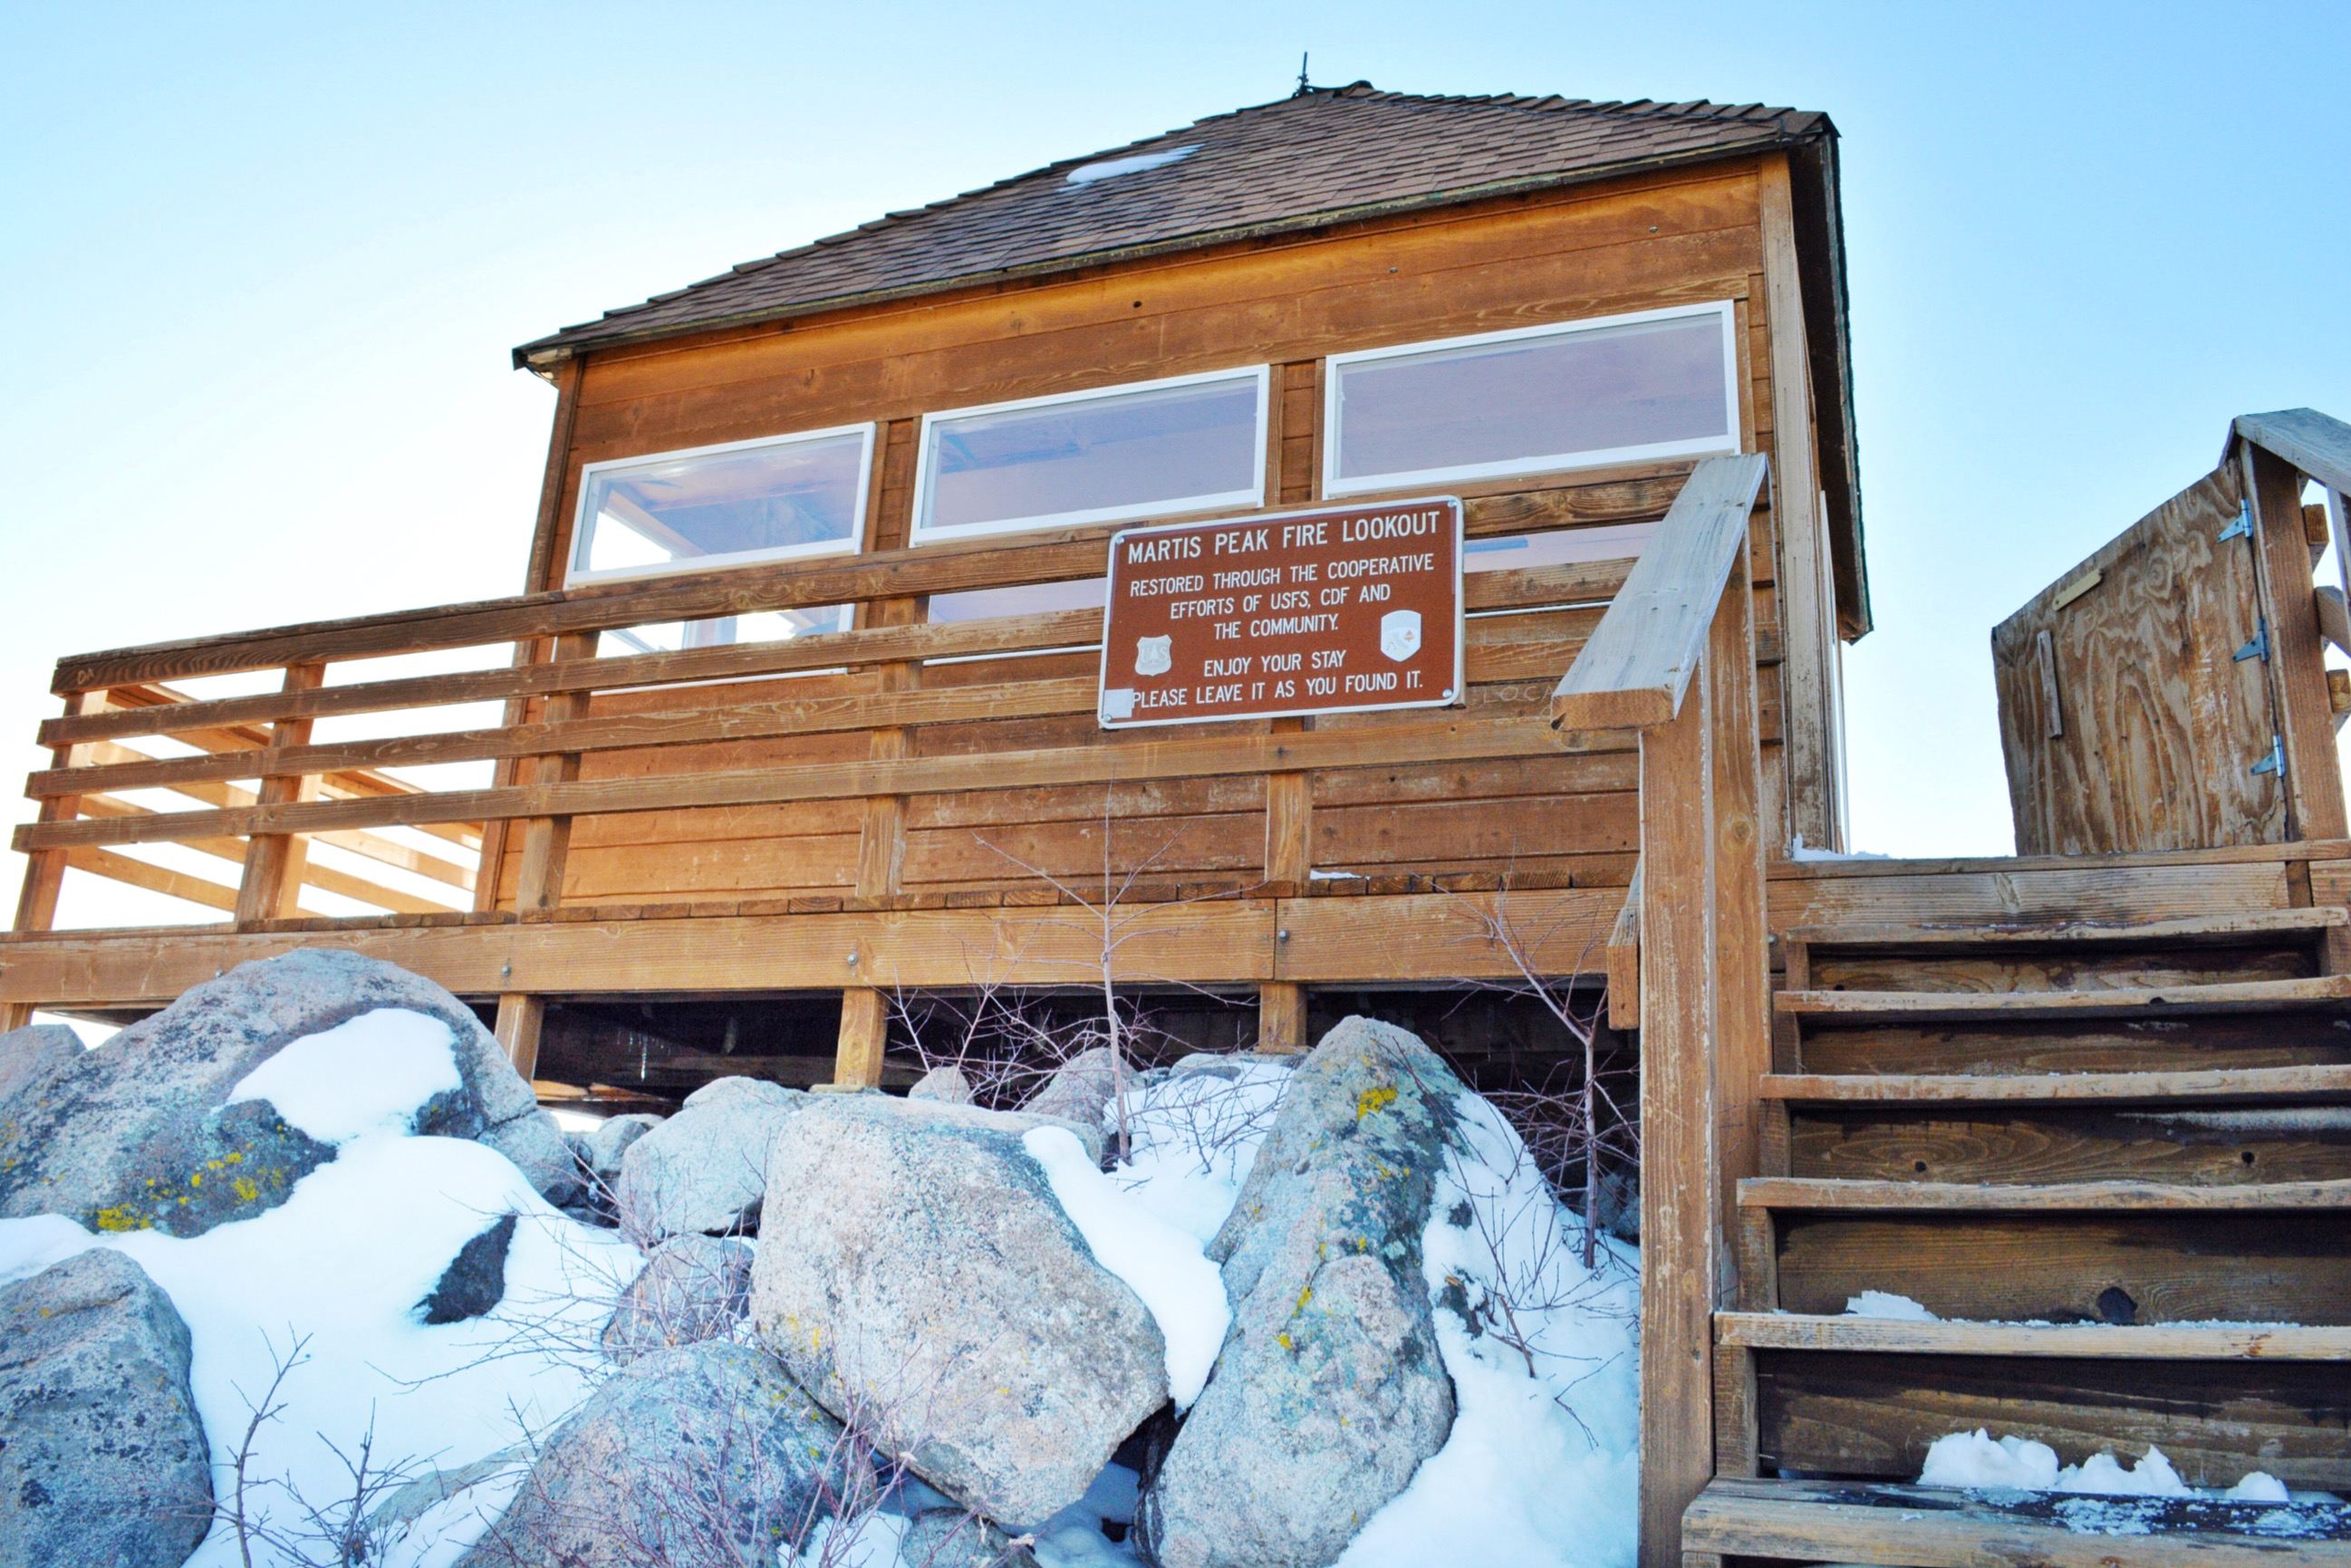 martis peak fire lookout